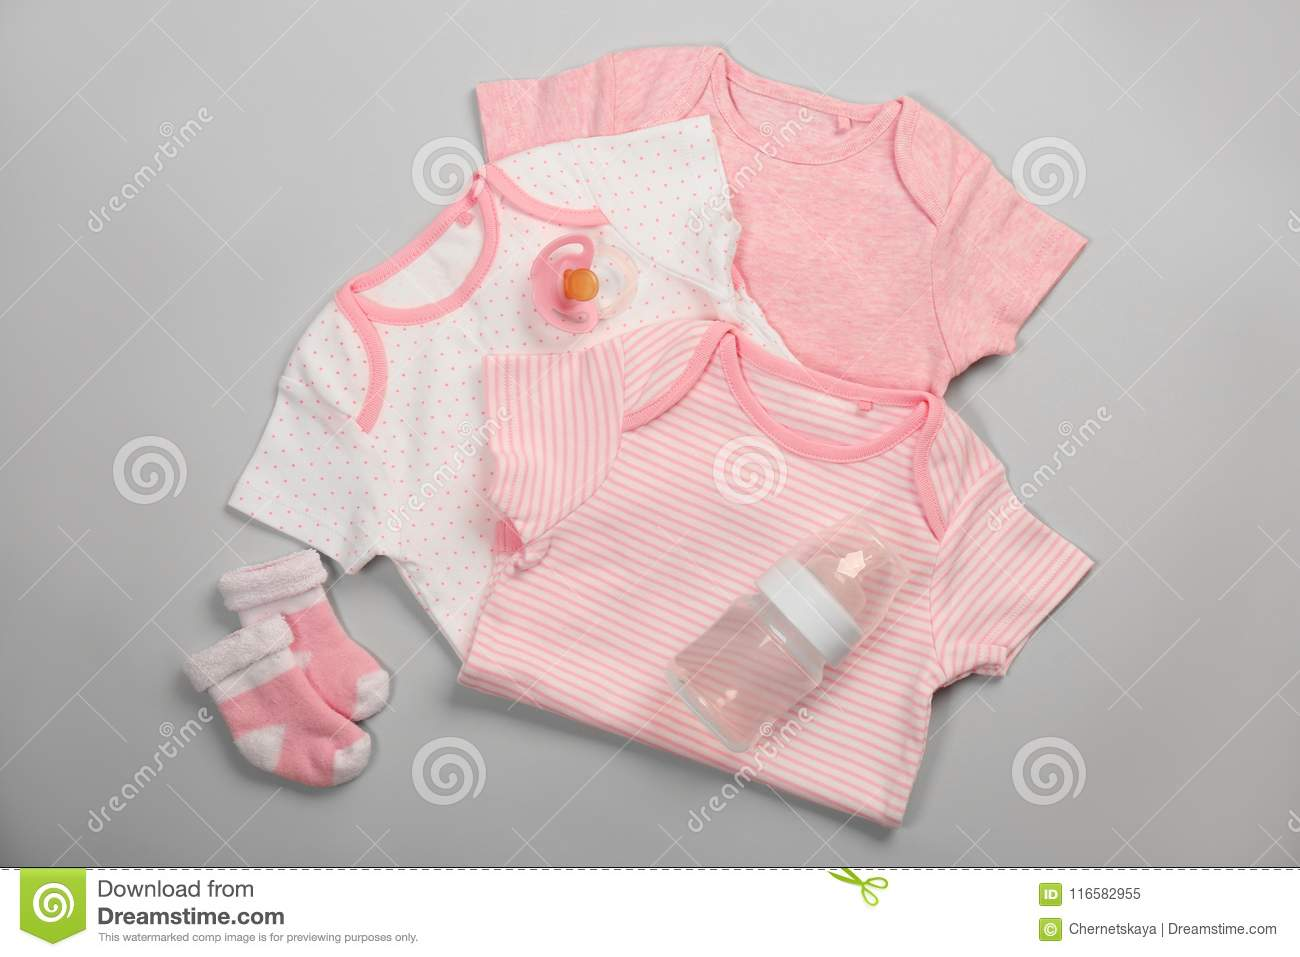 Baby Clothes And Necessities Stock Image - Image of baby ...